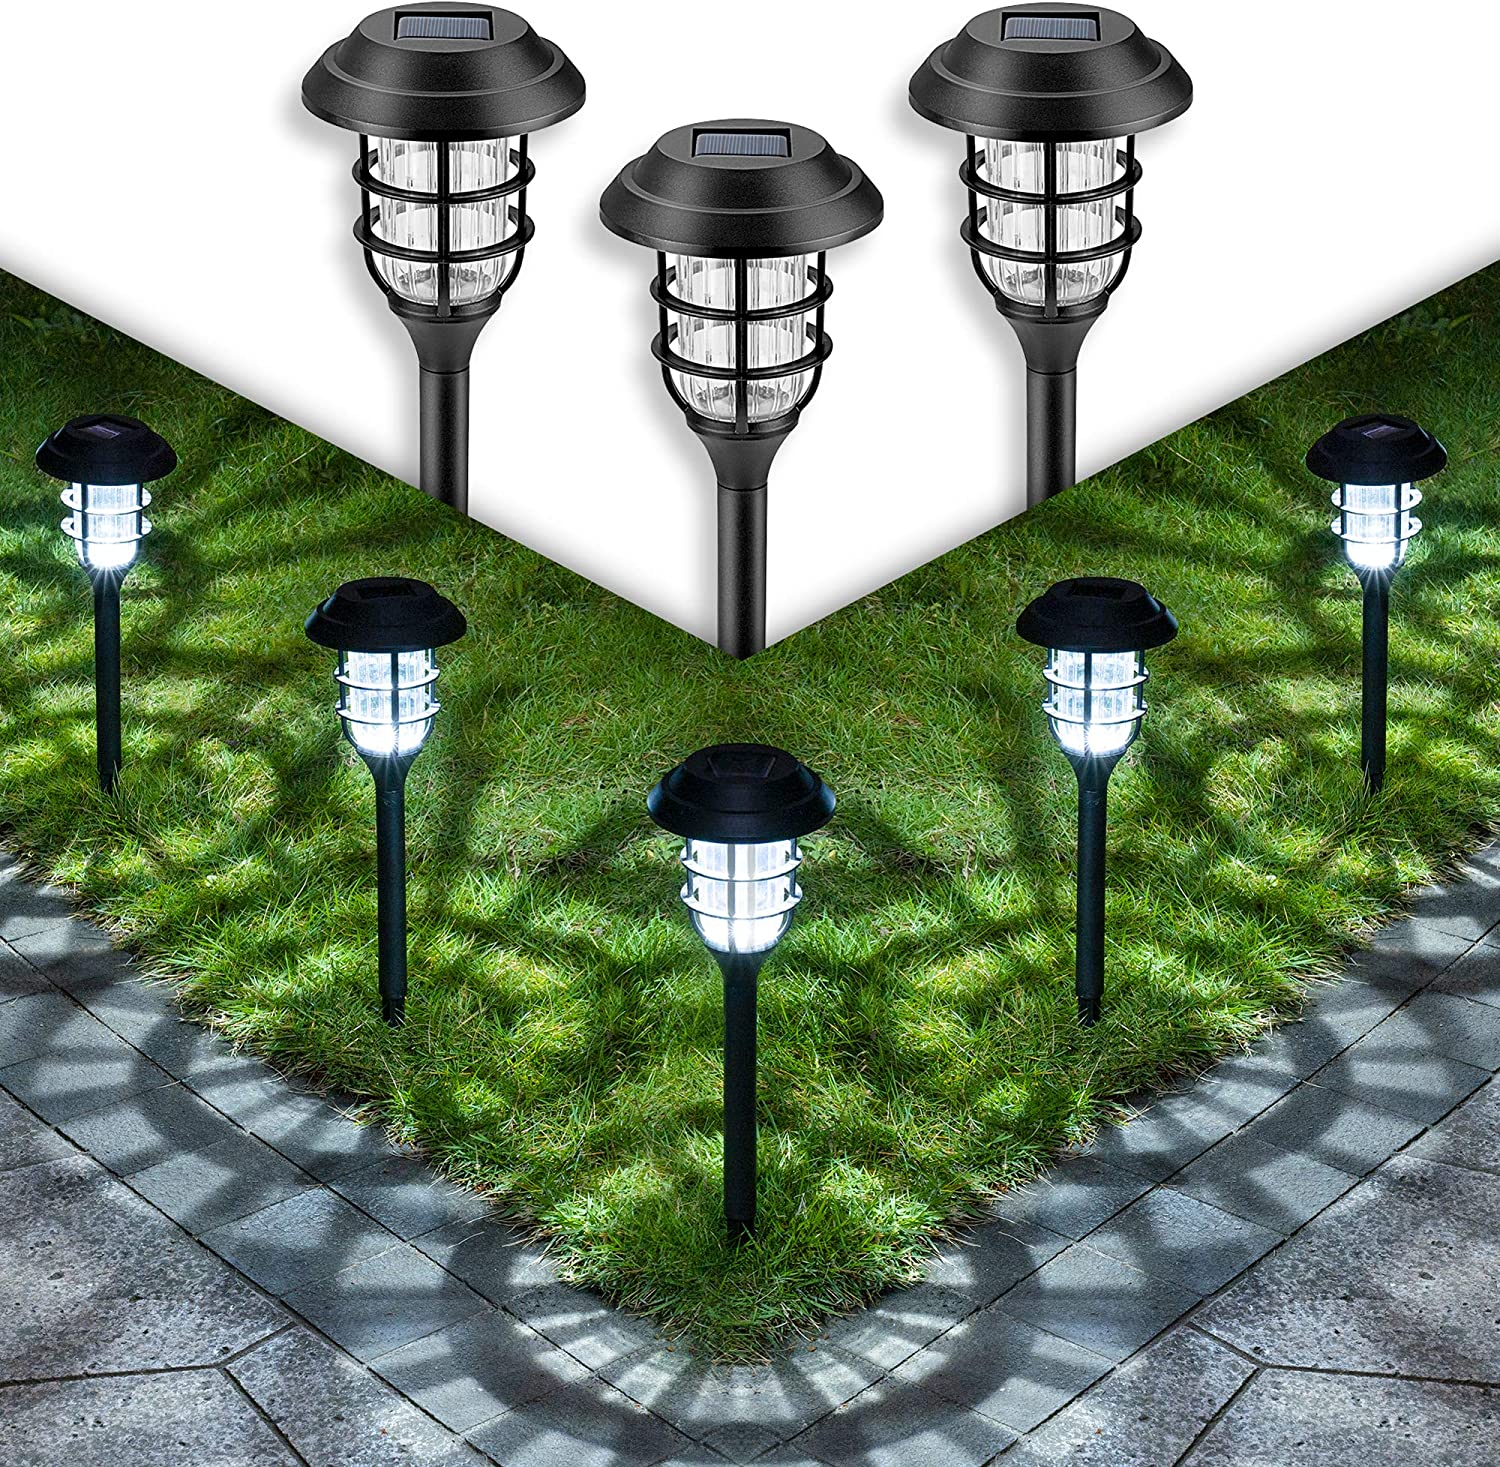 GIGALUMI Solar Pathway Lights Outdoor, 8 Pcs Solar Powered Yard Lights, Waterproof Led Solar Landscape Lights for Yard, Lawn, Patio, Garden, Path, Walkway or Driveway(Cold White).